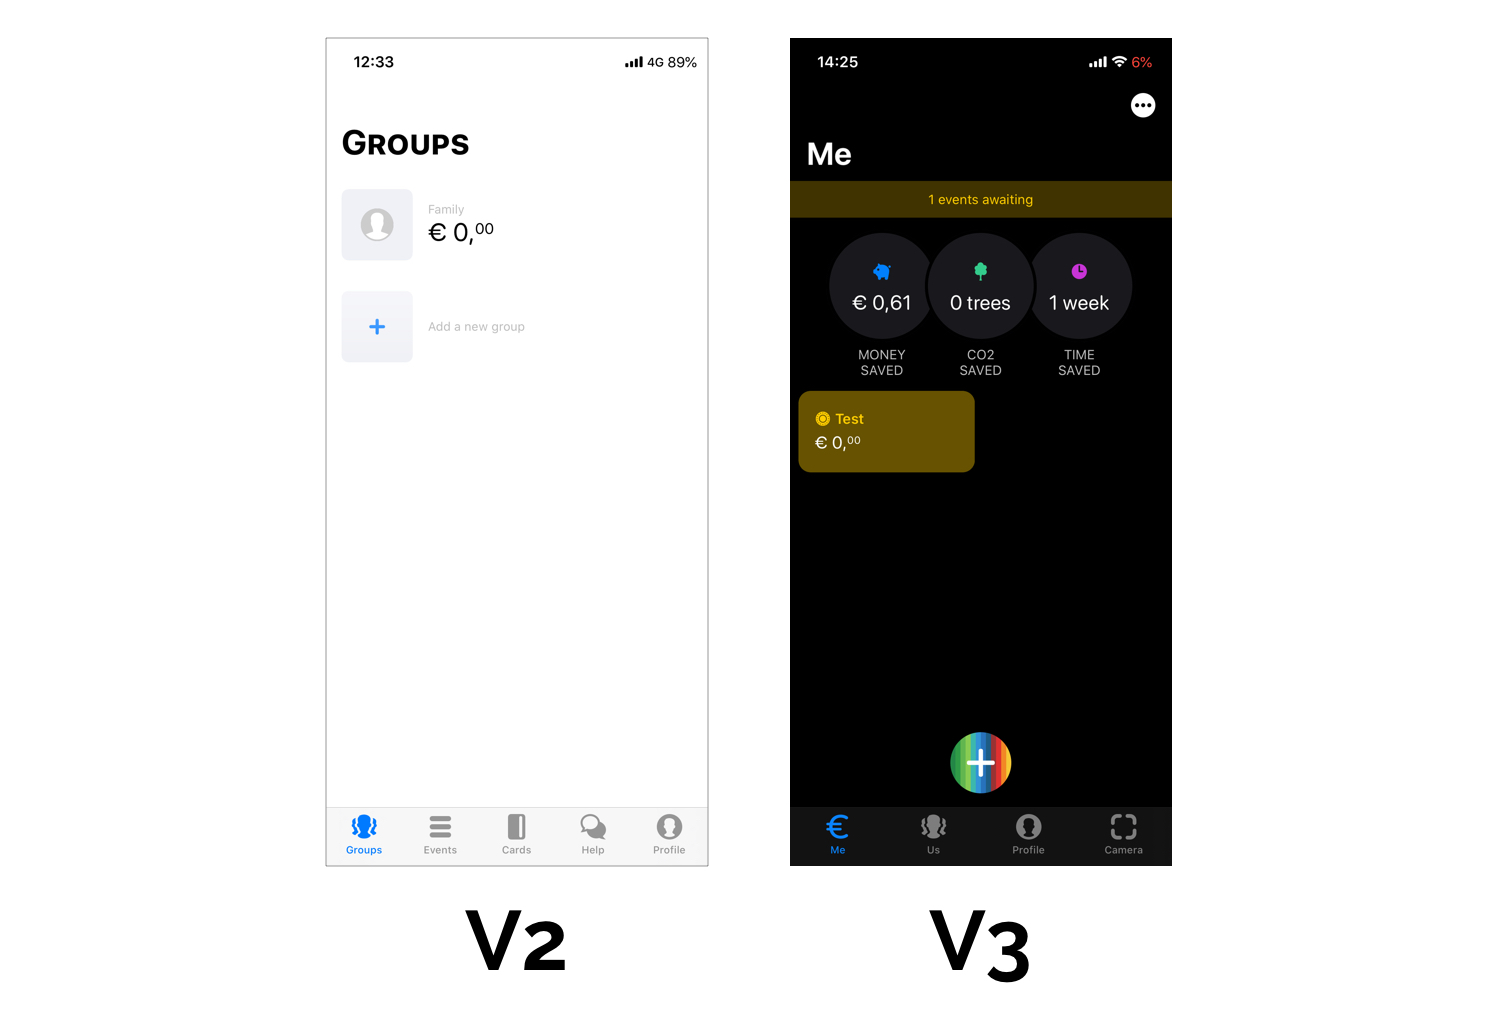 bunq V2 vs. bunq V3 interface